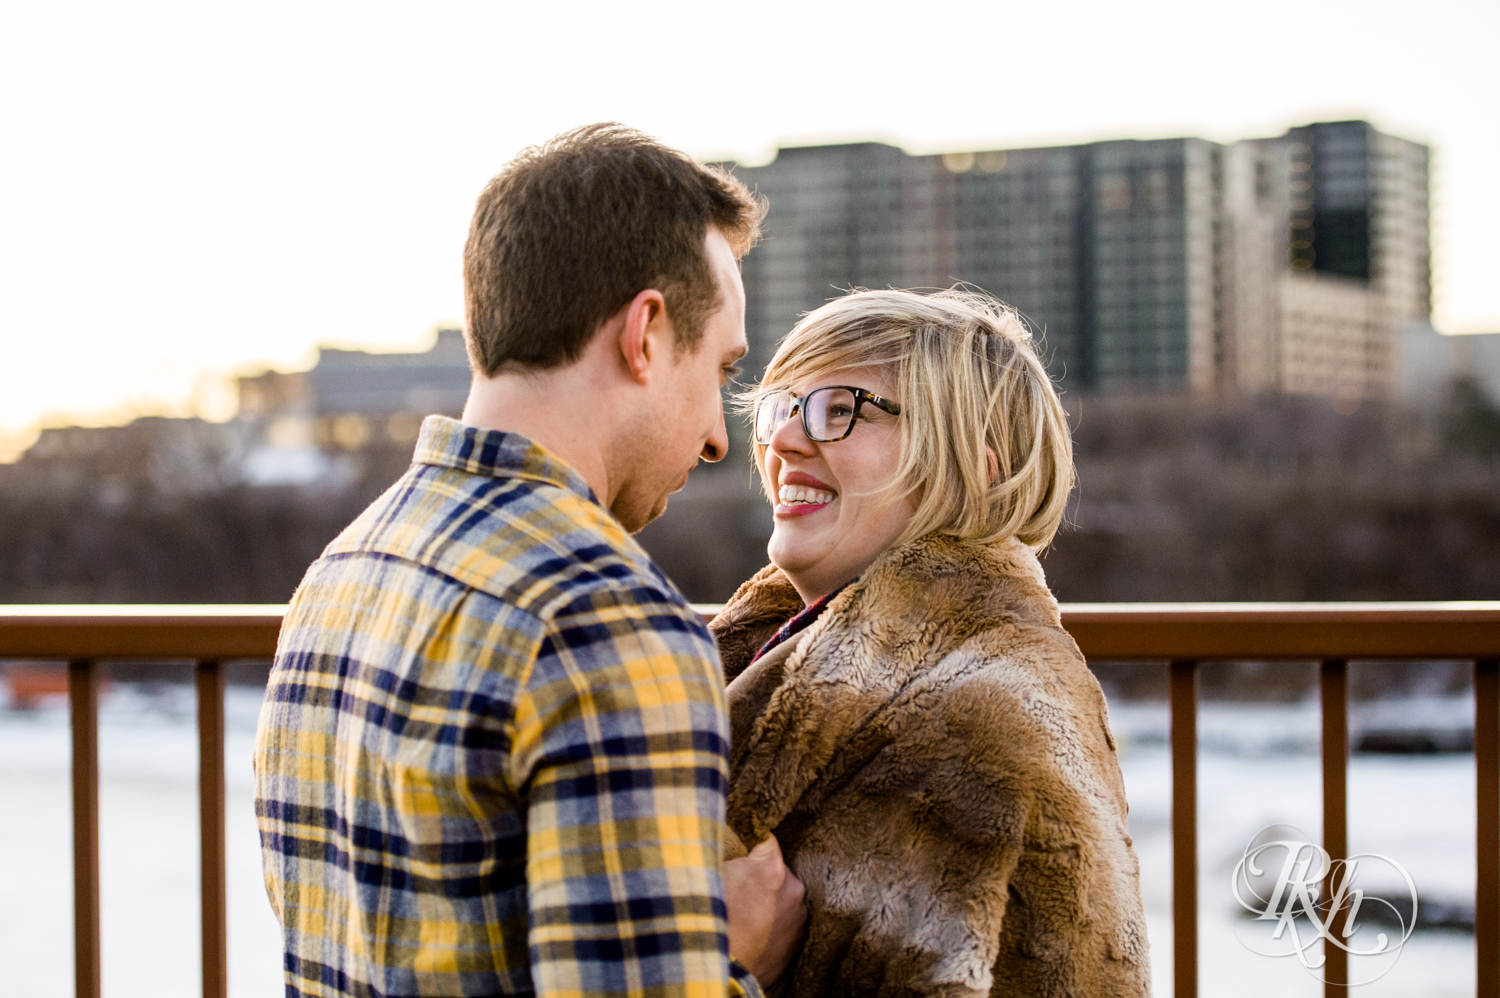 Kate & Kyle - Minnesota Sunrise Engagement Photography - Stone Arch Bridge - RKH Images (8 of 18).jpg